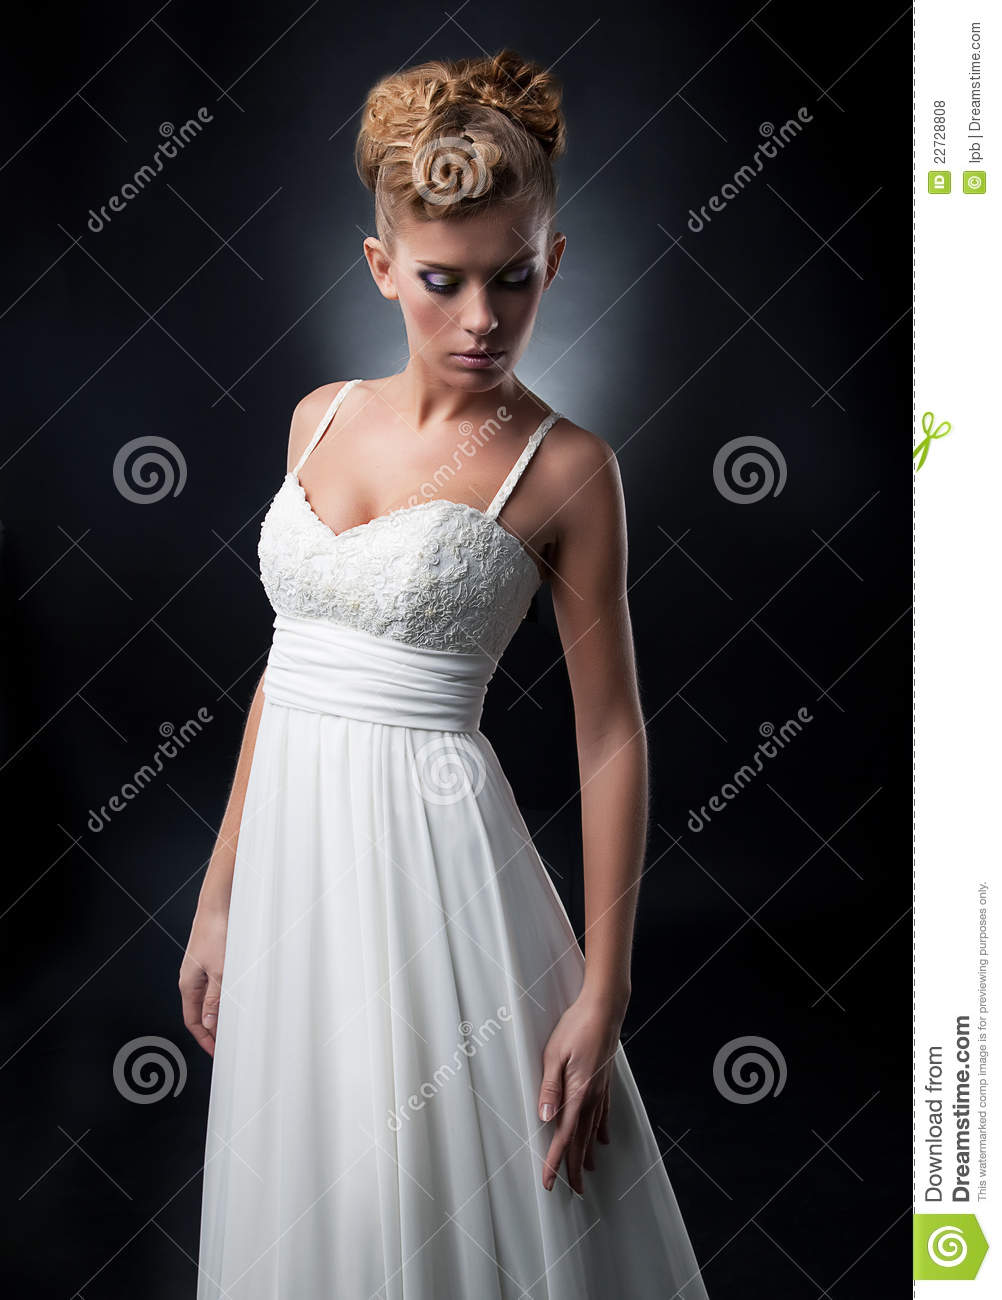 wedding dress 3d model free download gentle bride lovely young girl in wedding dress royalty